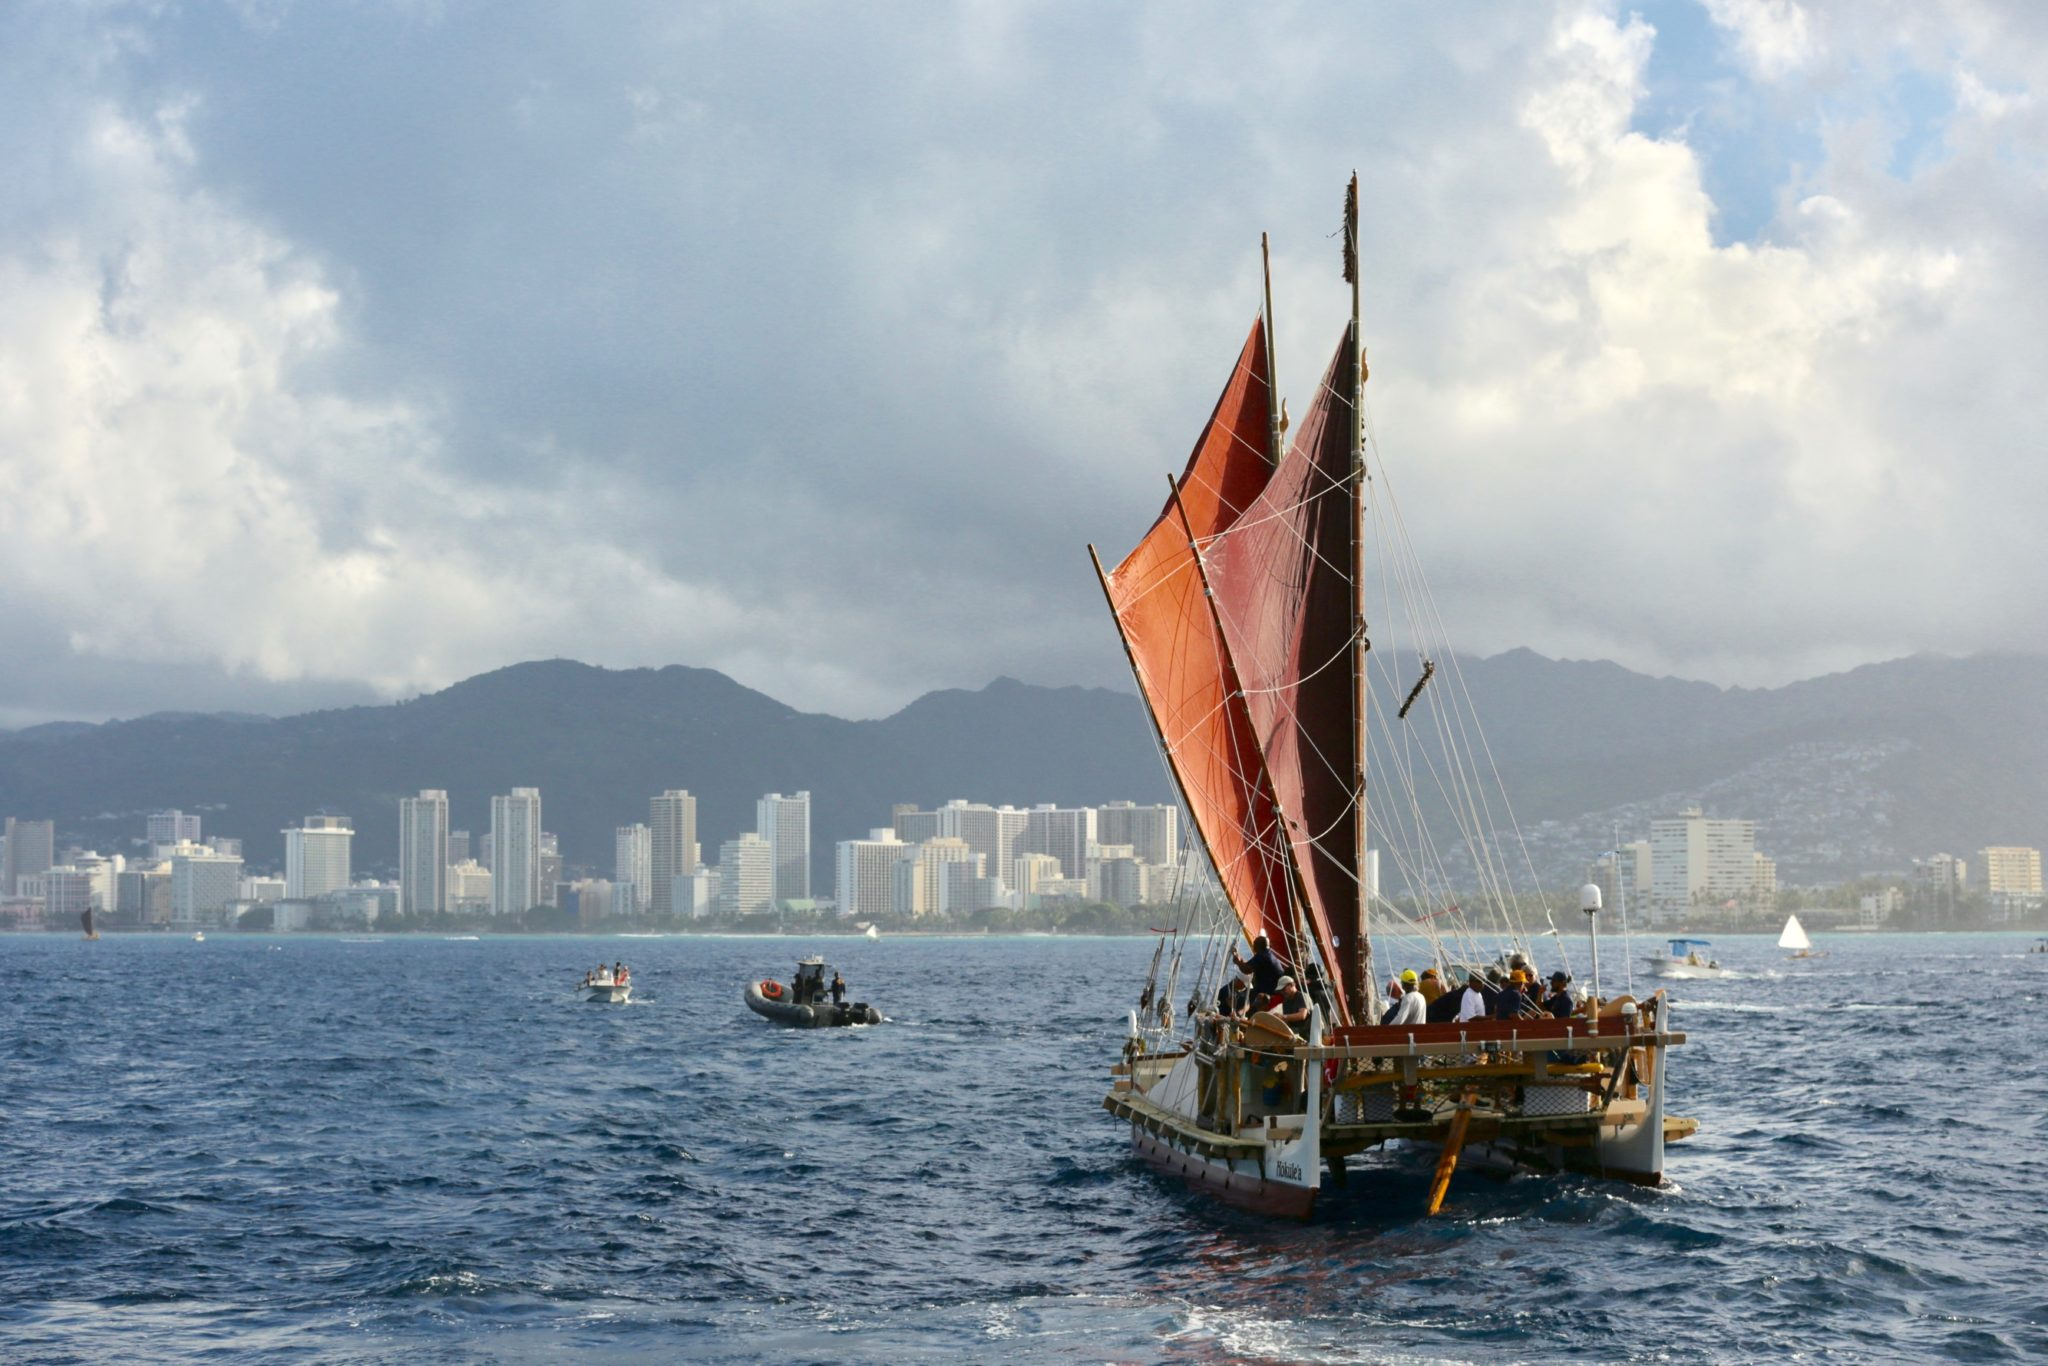 <p>The Hokulea crew opens her sails to make the final push toward Magic Island. / Anthony Quintano</p>